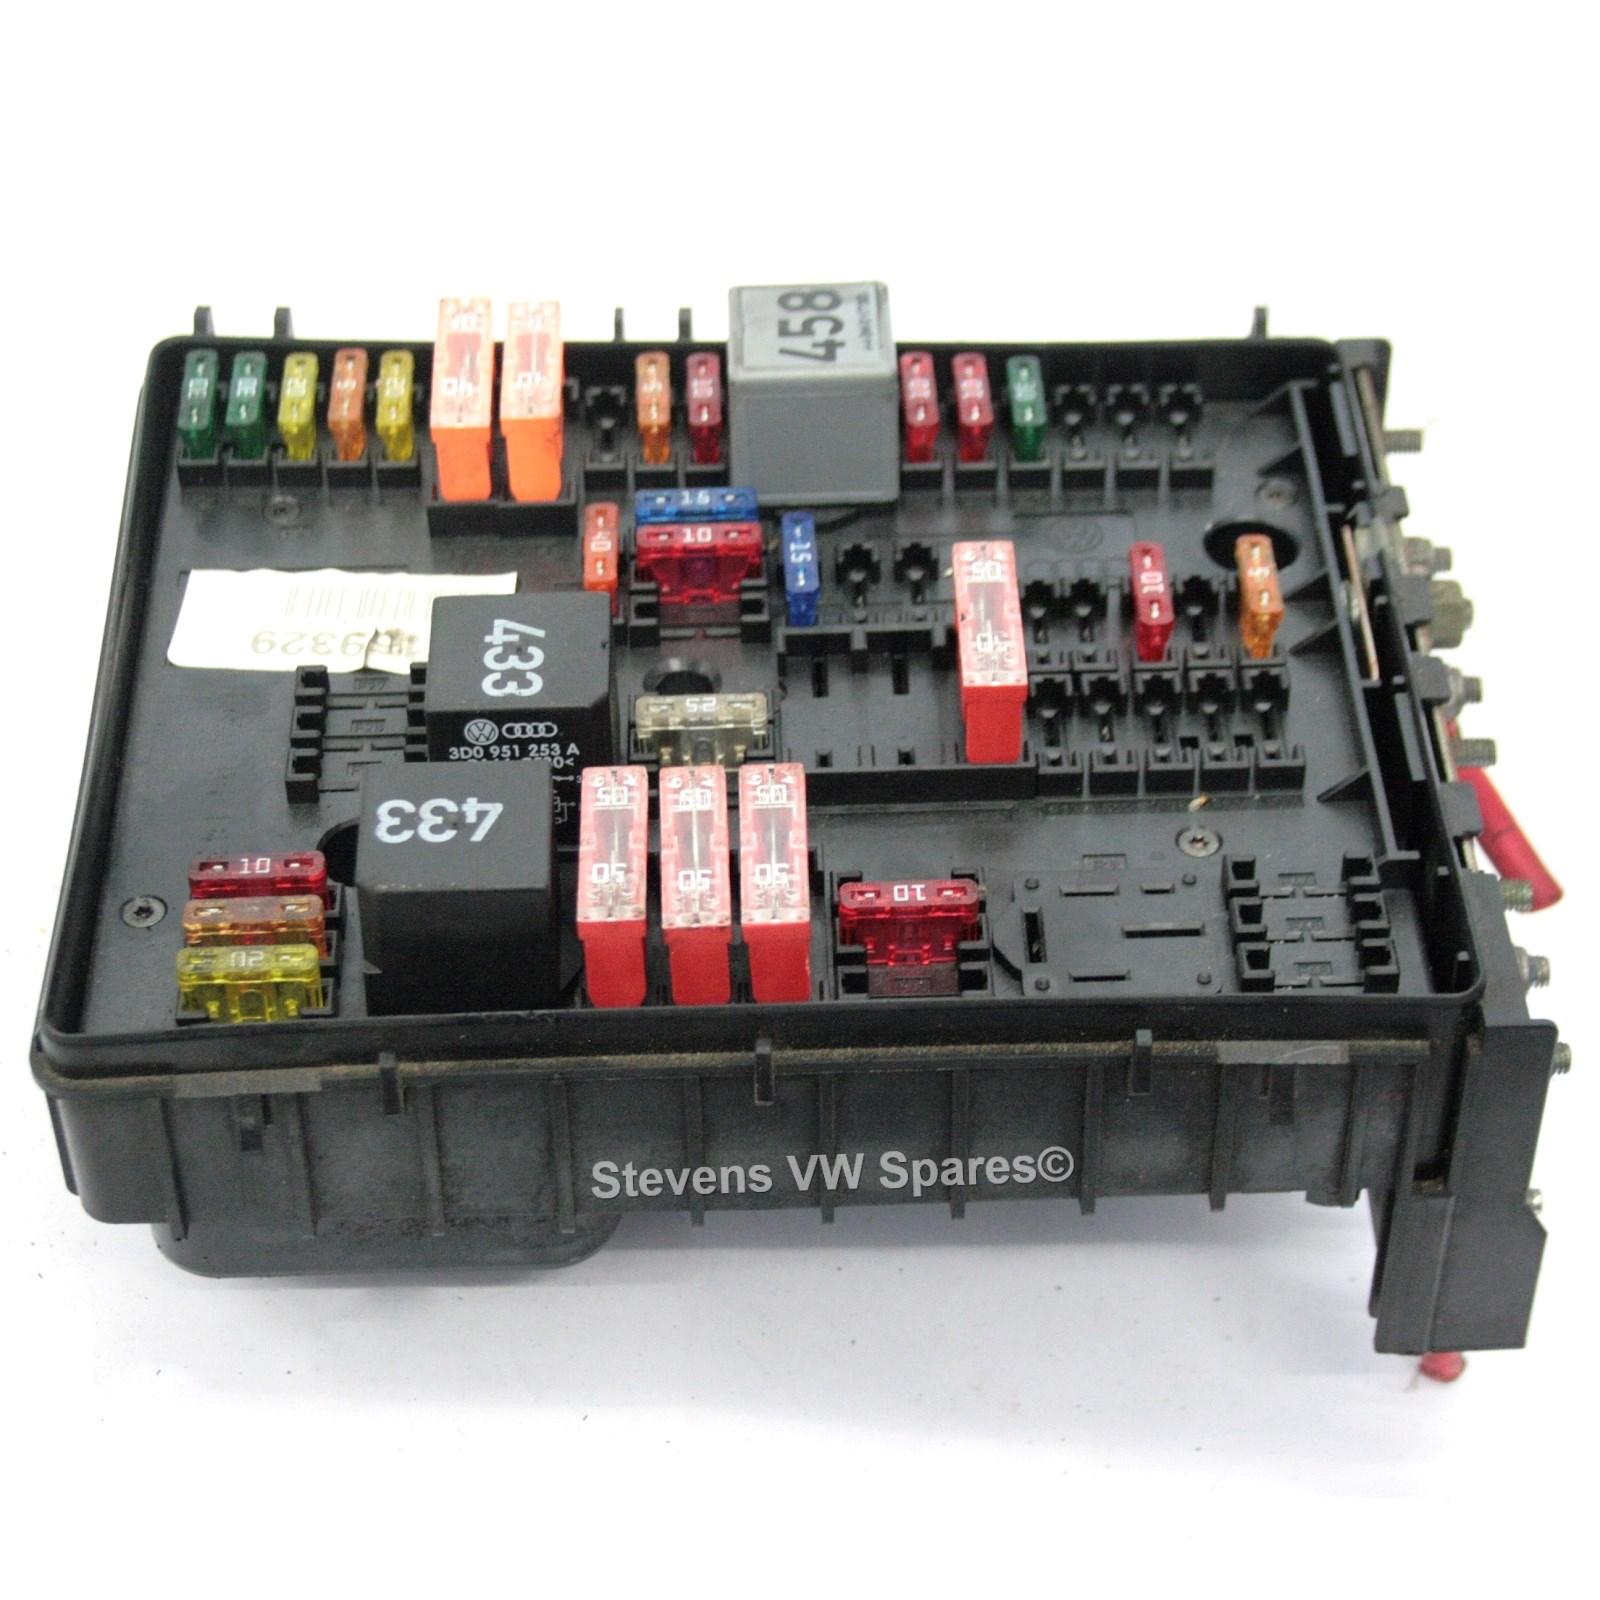 04822 used genuine vw golf engine bay fuse box terminal 1k0 937 124 h Bussmann Fuse Box Schematic Diagram at bakdesigns.co